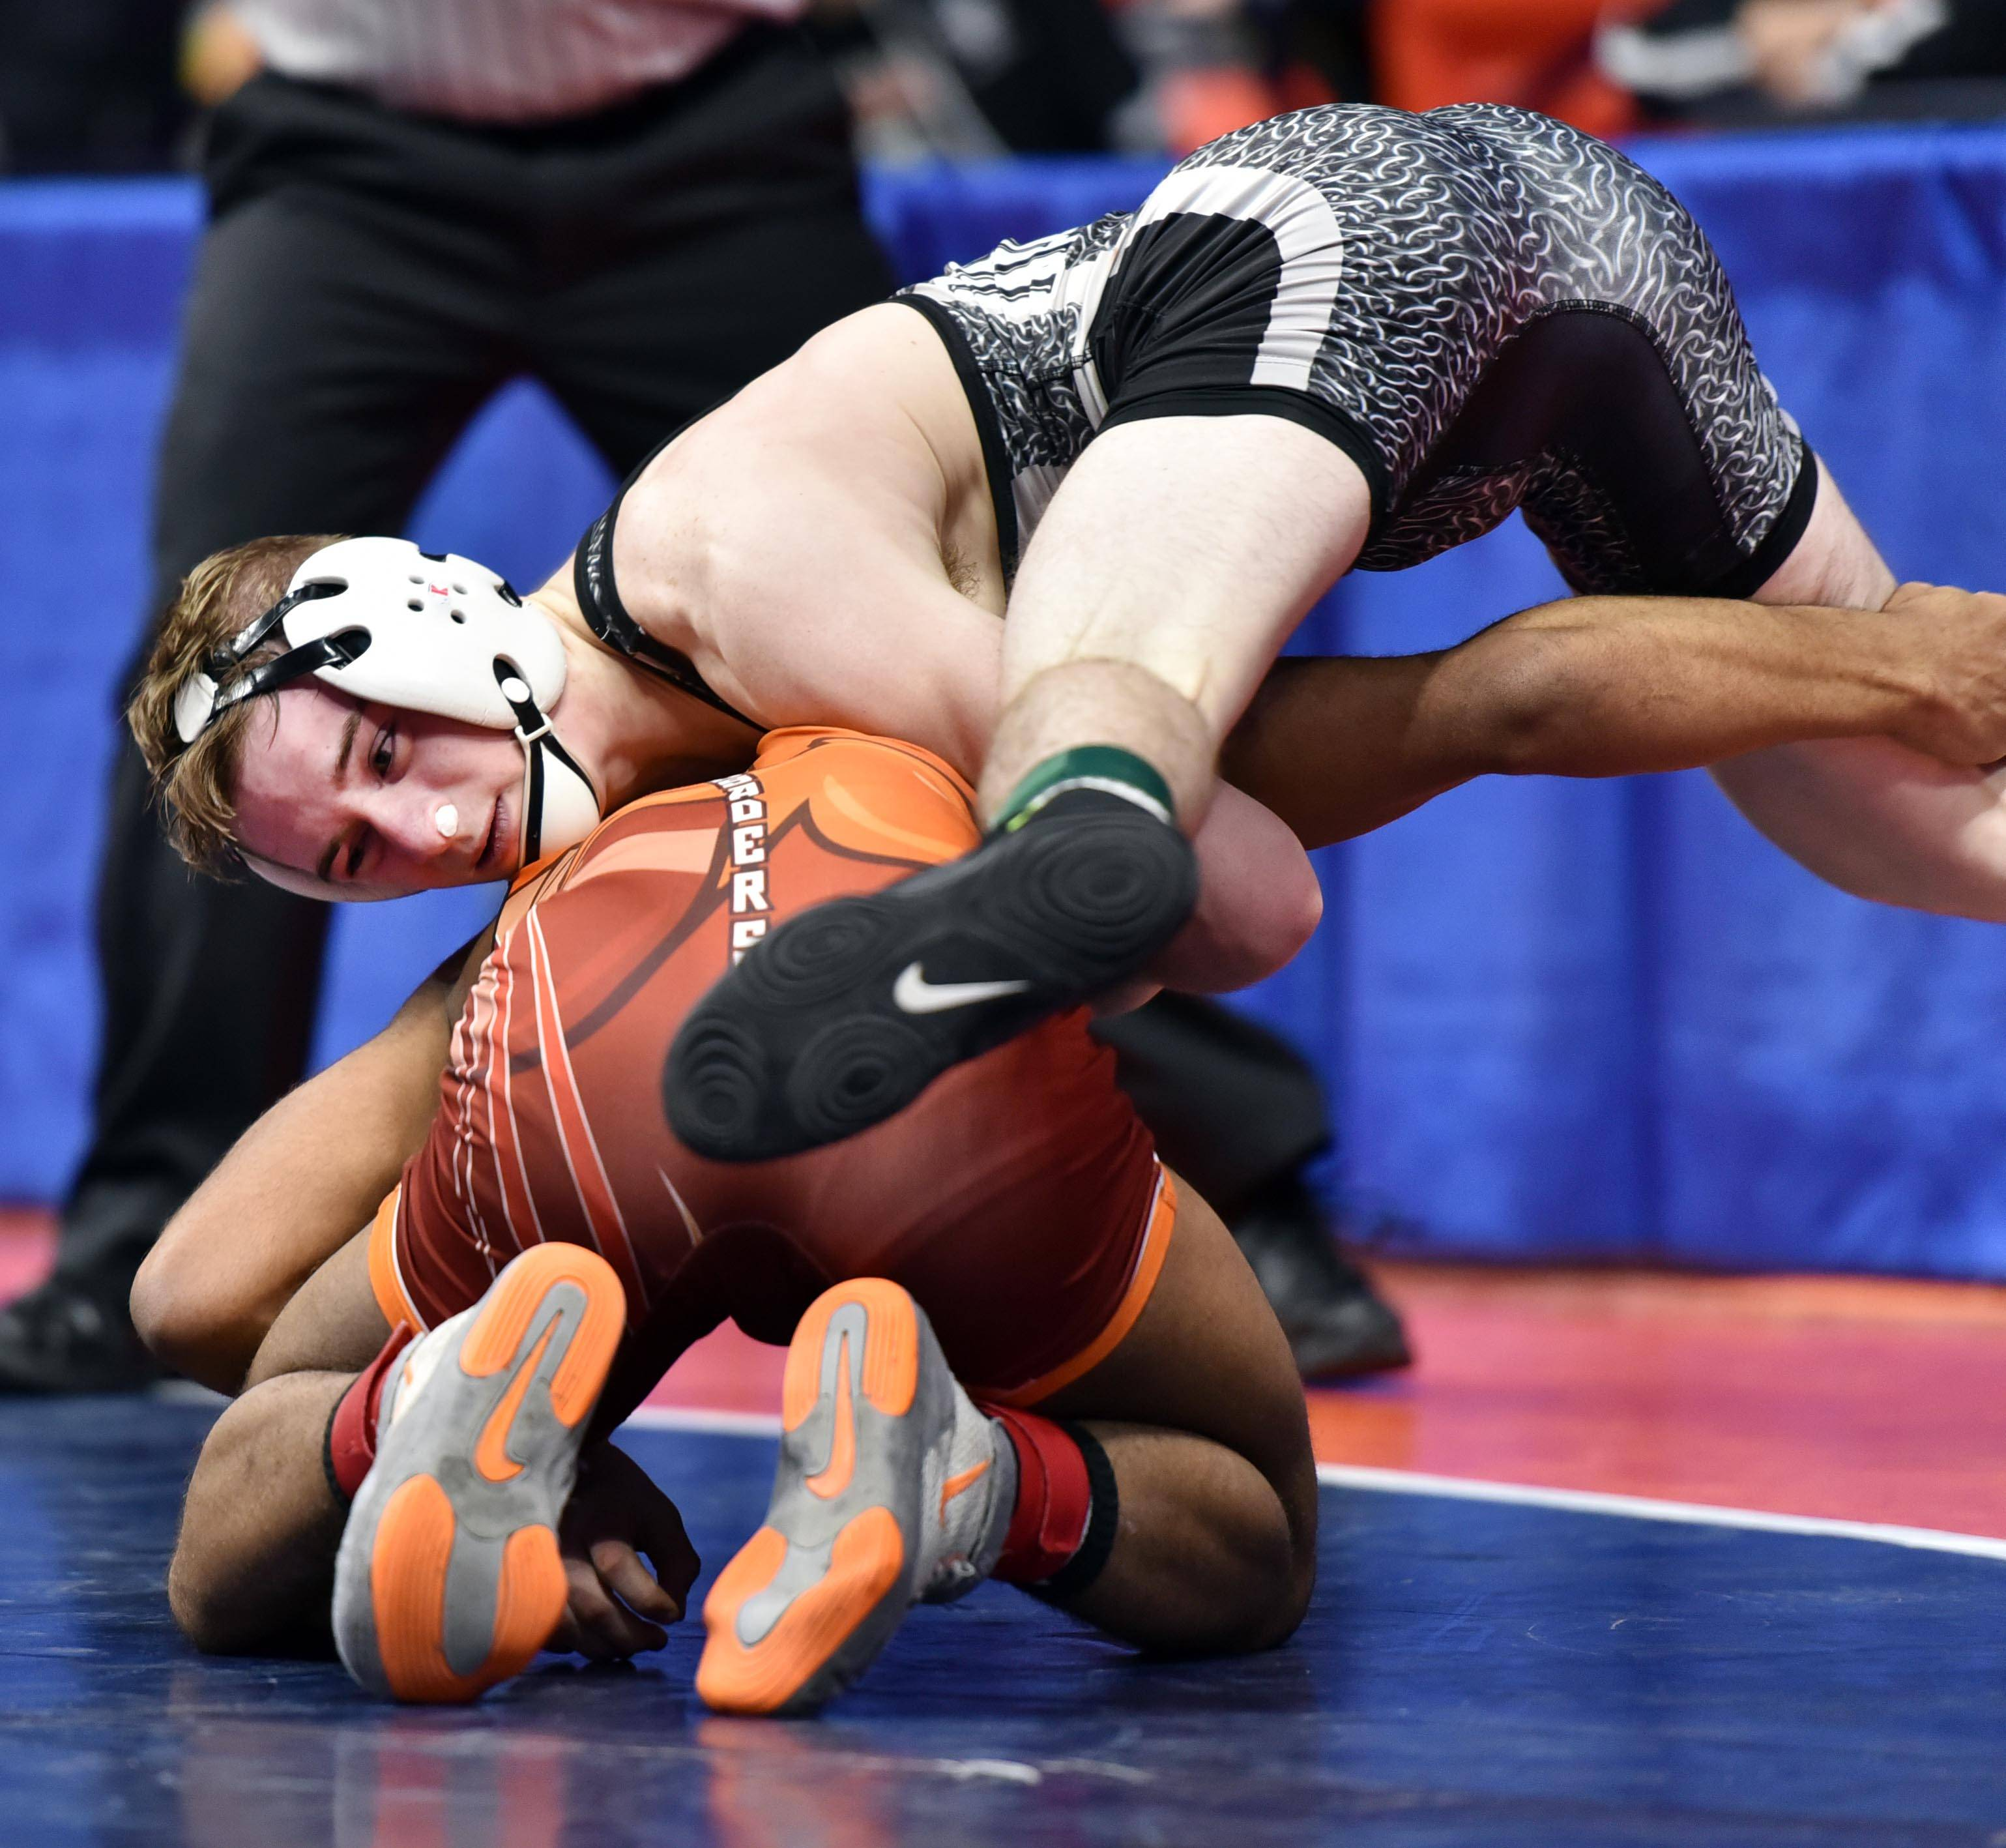 Kaneland's Austin Kenzie competes with Hassan Johnson of Brother Rice in the Class 2A 120 pound quarterfinal bout Friday at the IHSA state wrestling tournament preliminaries.